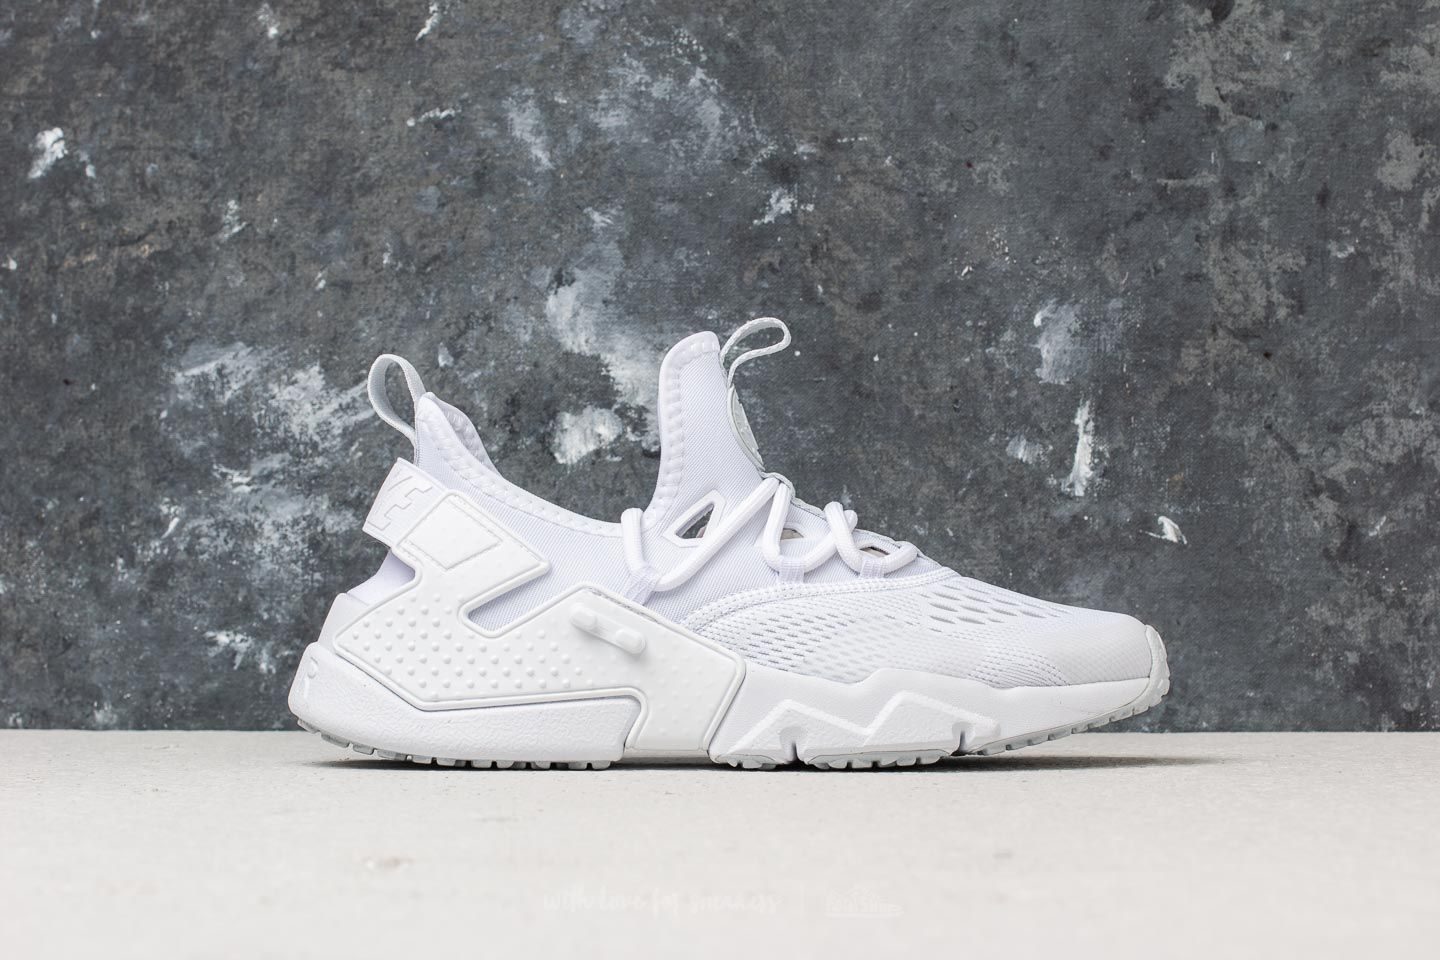 815a9c0c21df6 ... official nike air huarache drift br white pure platinum at a great  price 159 buy at